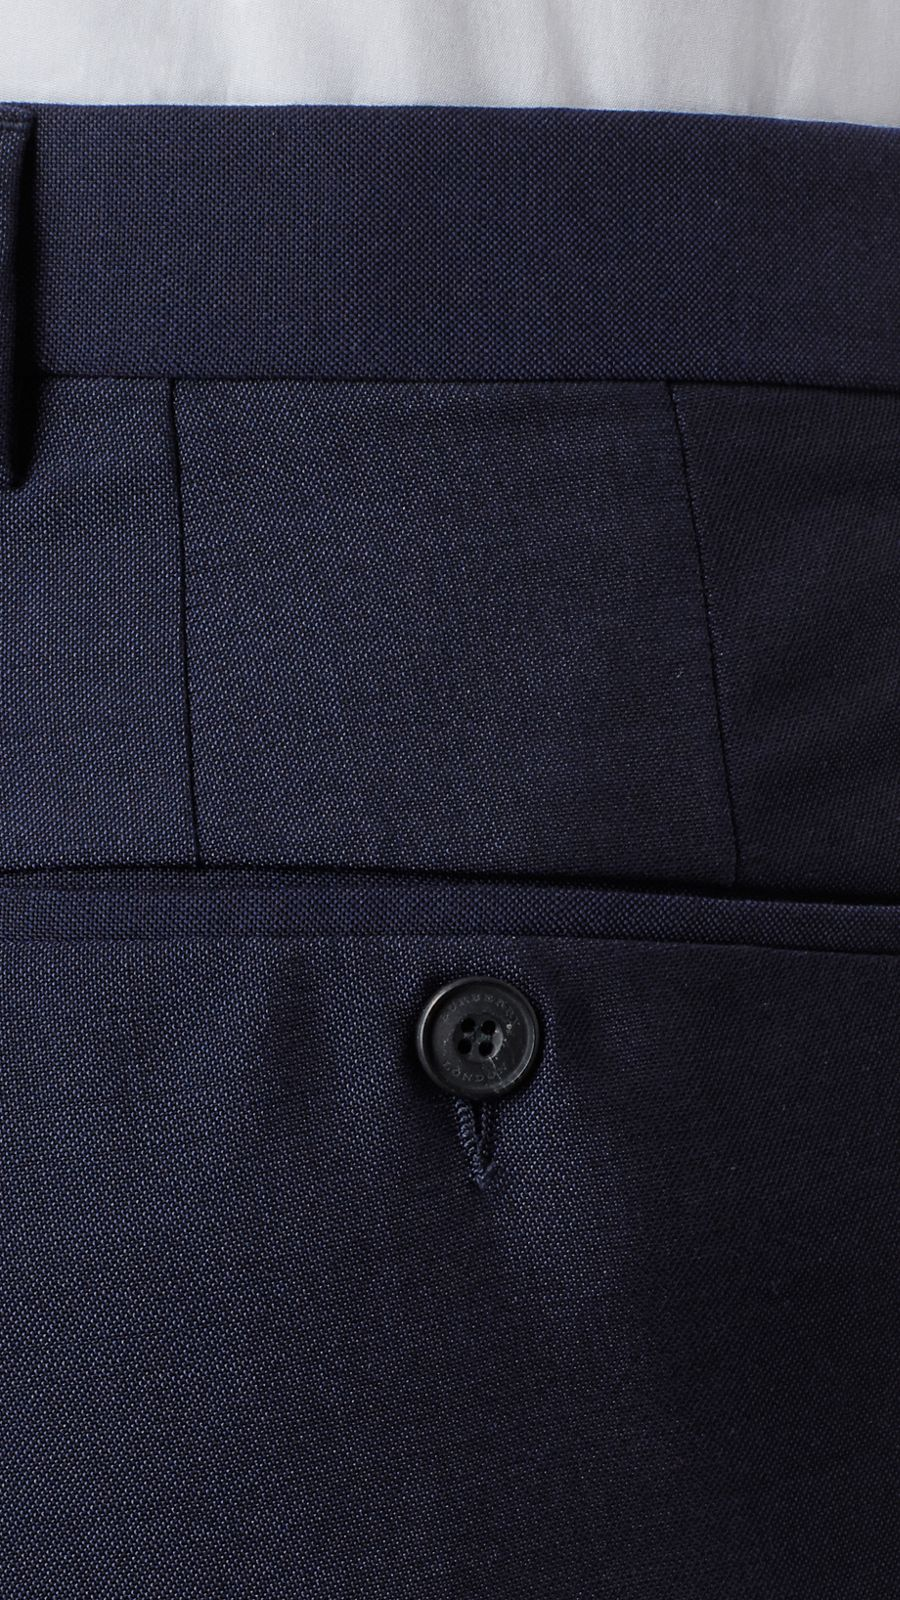 Royal navy Modern Fit Wool Mohair Trousers Royal Navy - Image 2